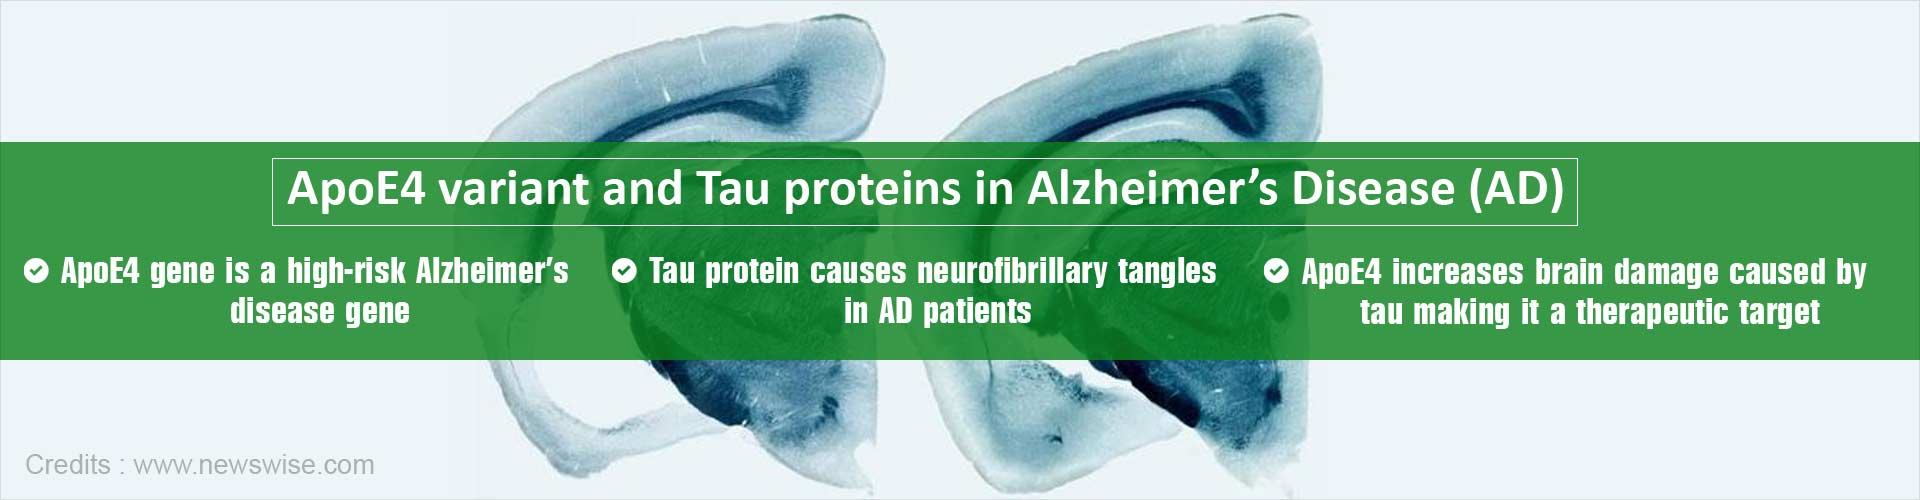 New Role of Apolipoprotein E4 Variant in Alzheimers Disease